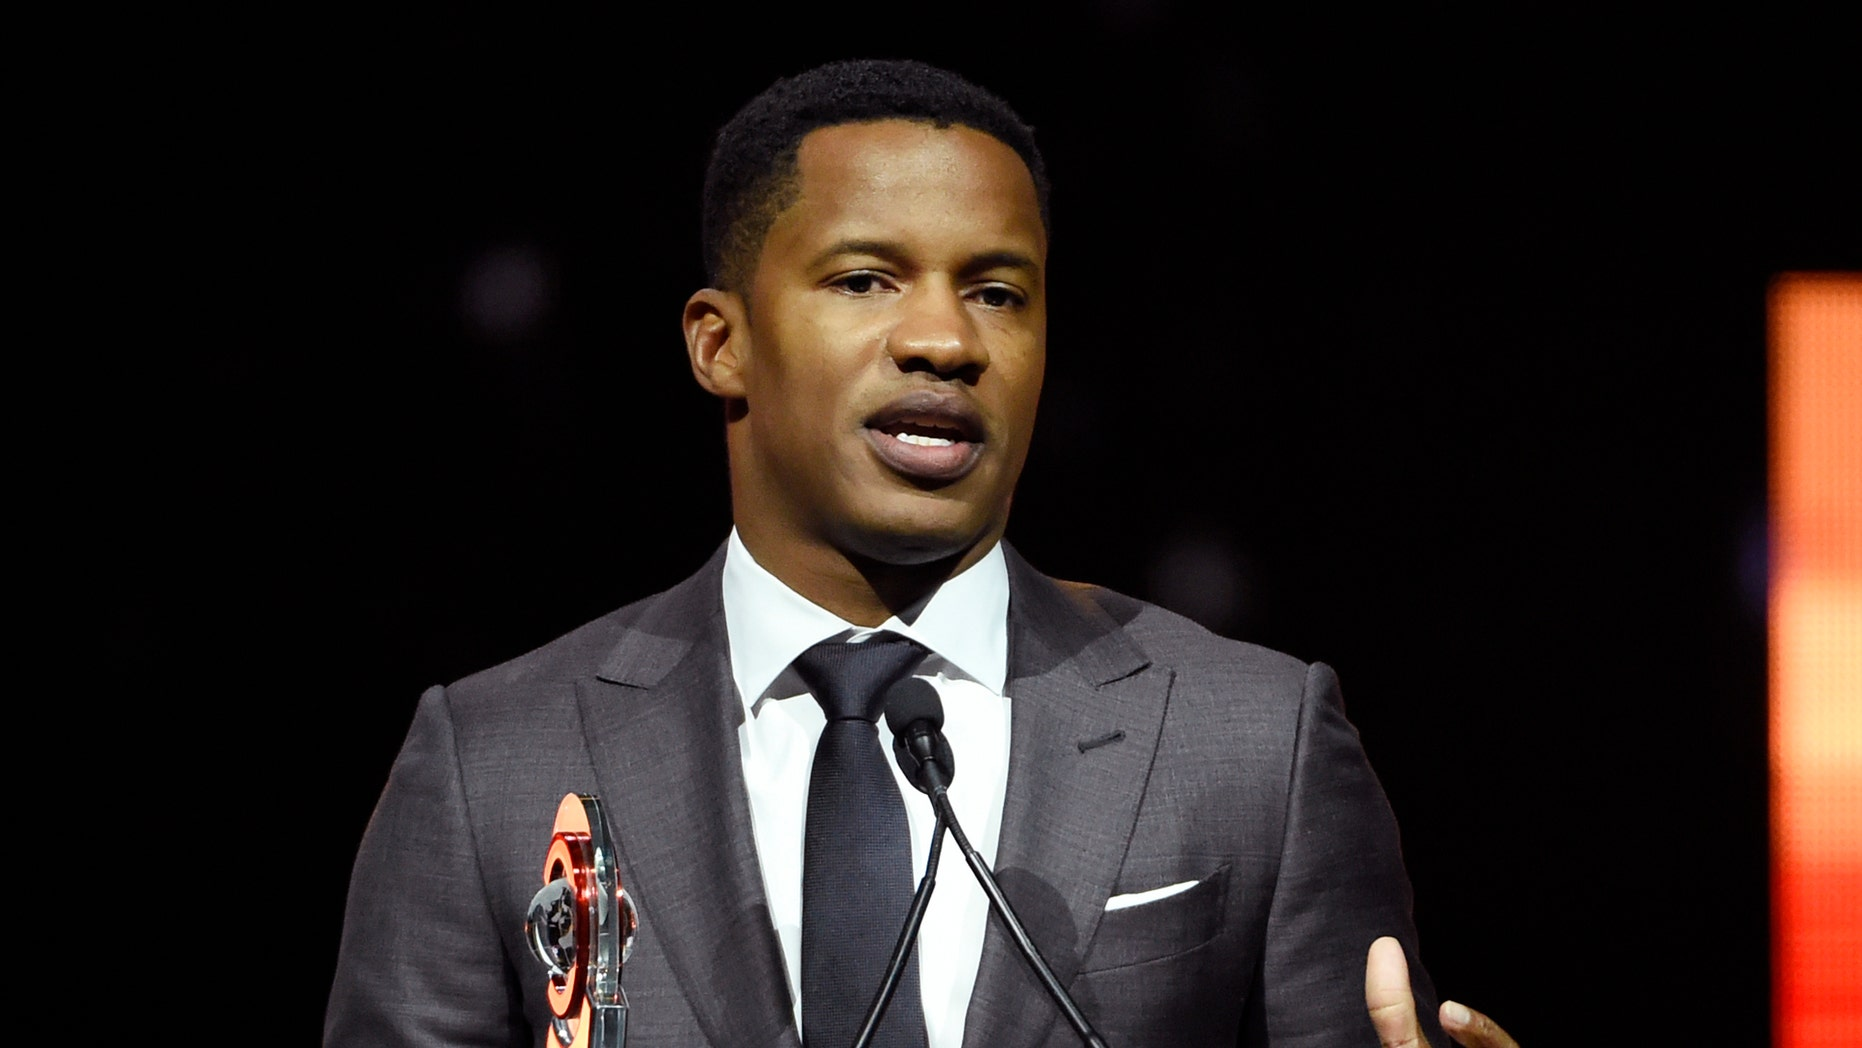 "FILE - In this April 14, 2016 file photo, Nate Parker, director of the upcoming film ""The Birth of a Nation,"" accepts the Breakthrough Director of the Year award during the CinemaCon 2016 Big Screen Achievement Awards in Las Vegas. The American Film Institute has canceled plans to screen writer-director Nate Parker's ""The Birth of a Nation"" for students this week amid controversies surrounding a 17 year old rape accusation of Parker and his co-writer. (Photo by Chris Pizzello/Invision/AP, File)"